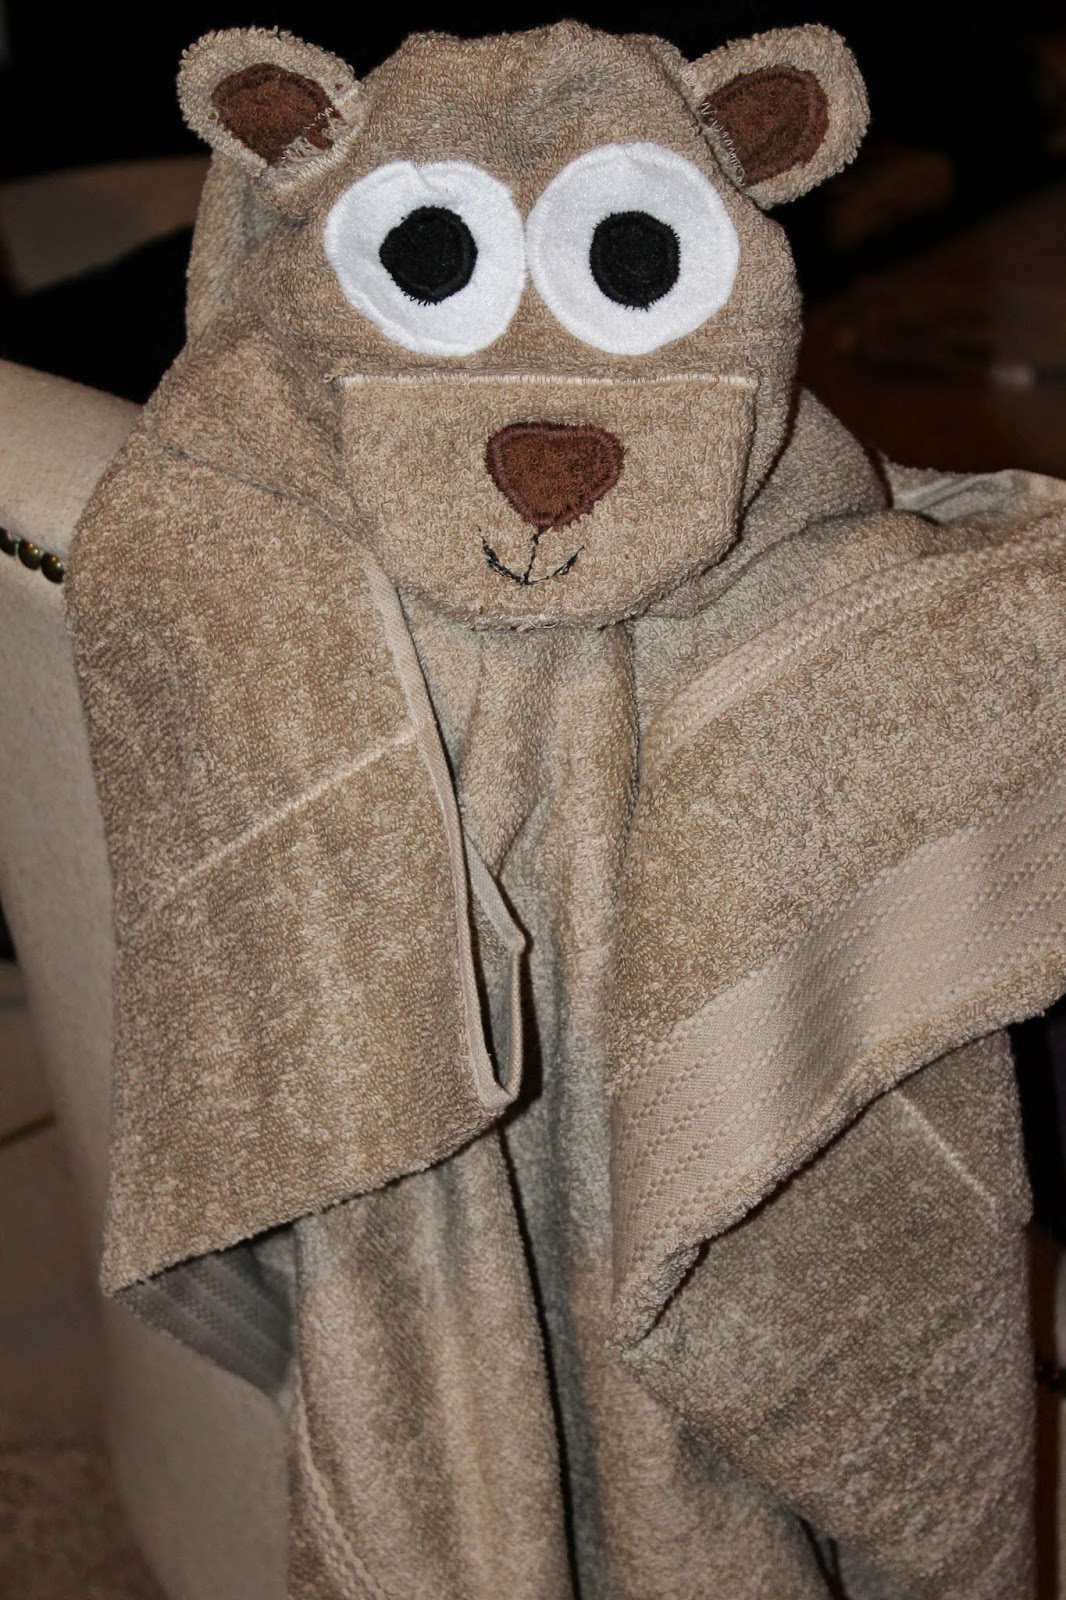 DIY hooded teddy bear towel, hooded bath towel